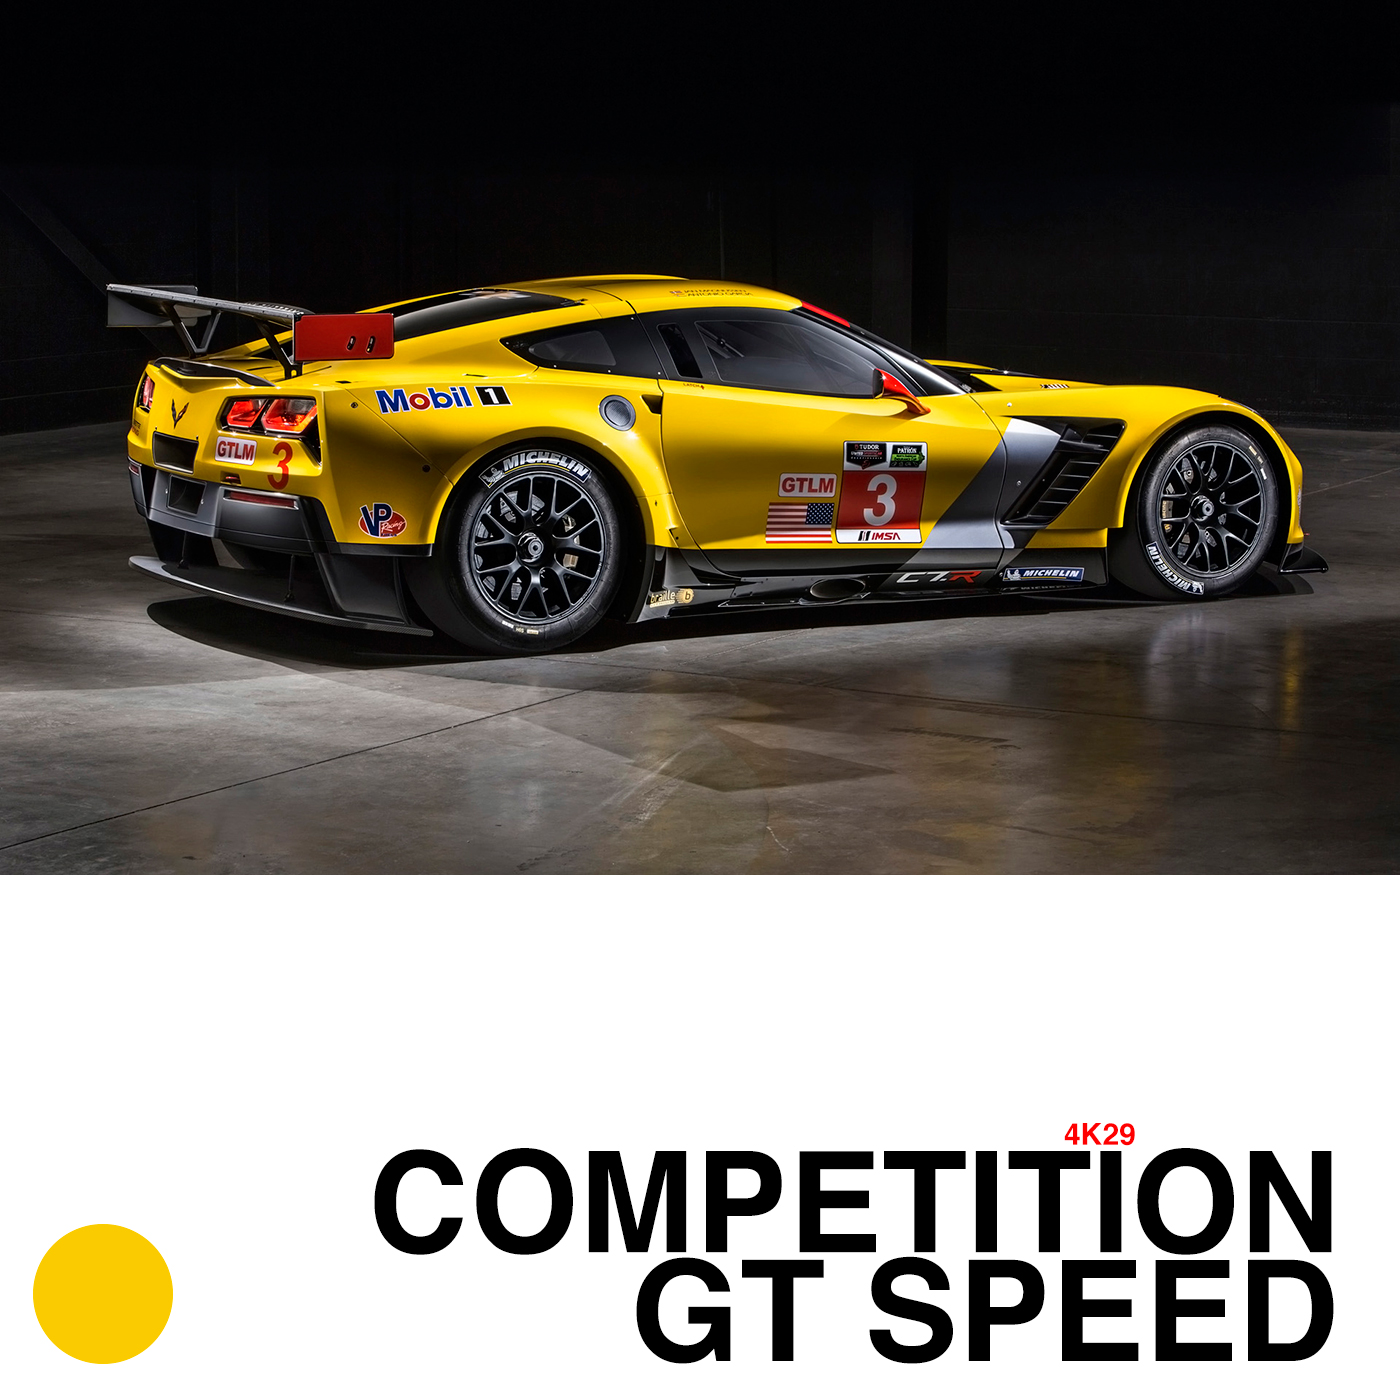 COMPETITION GT SPEED 4K29